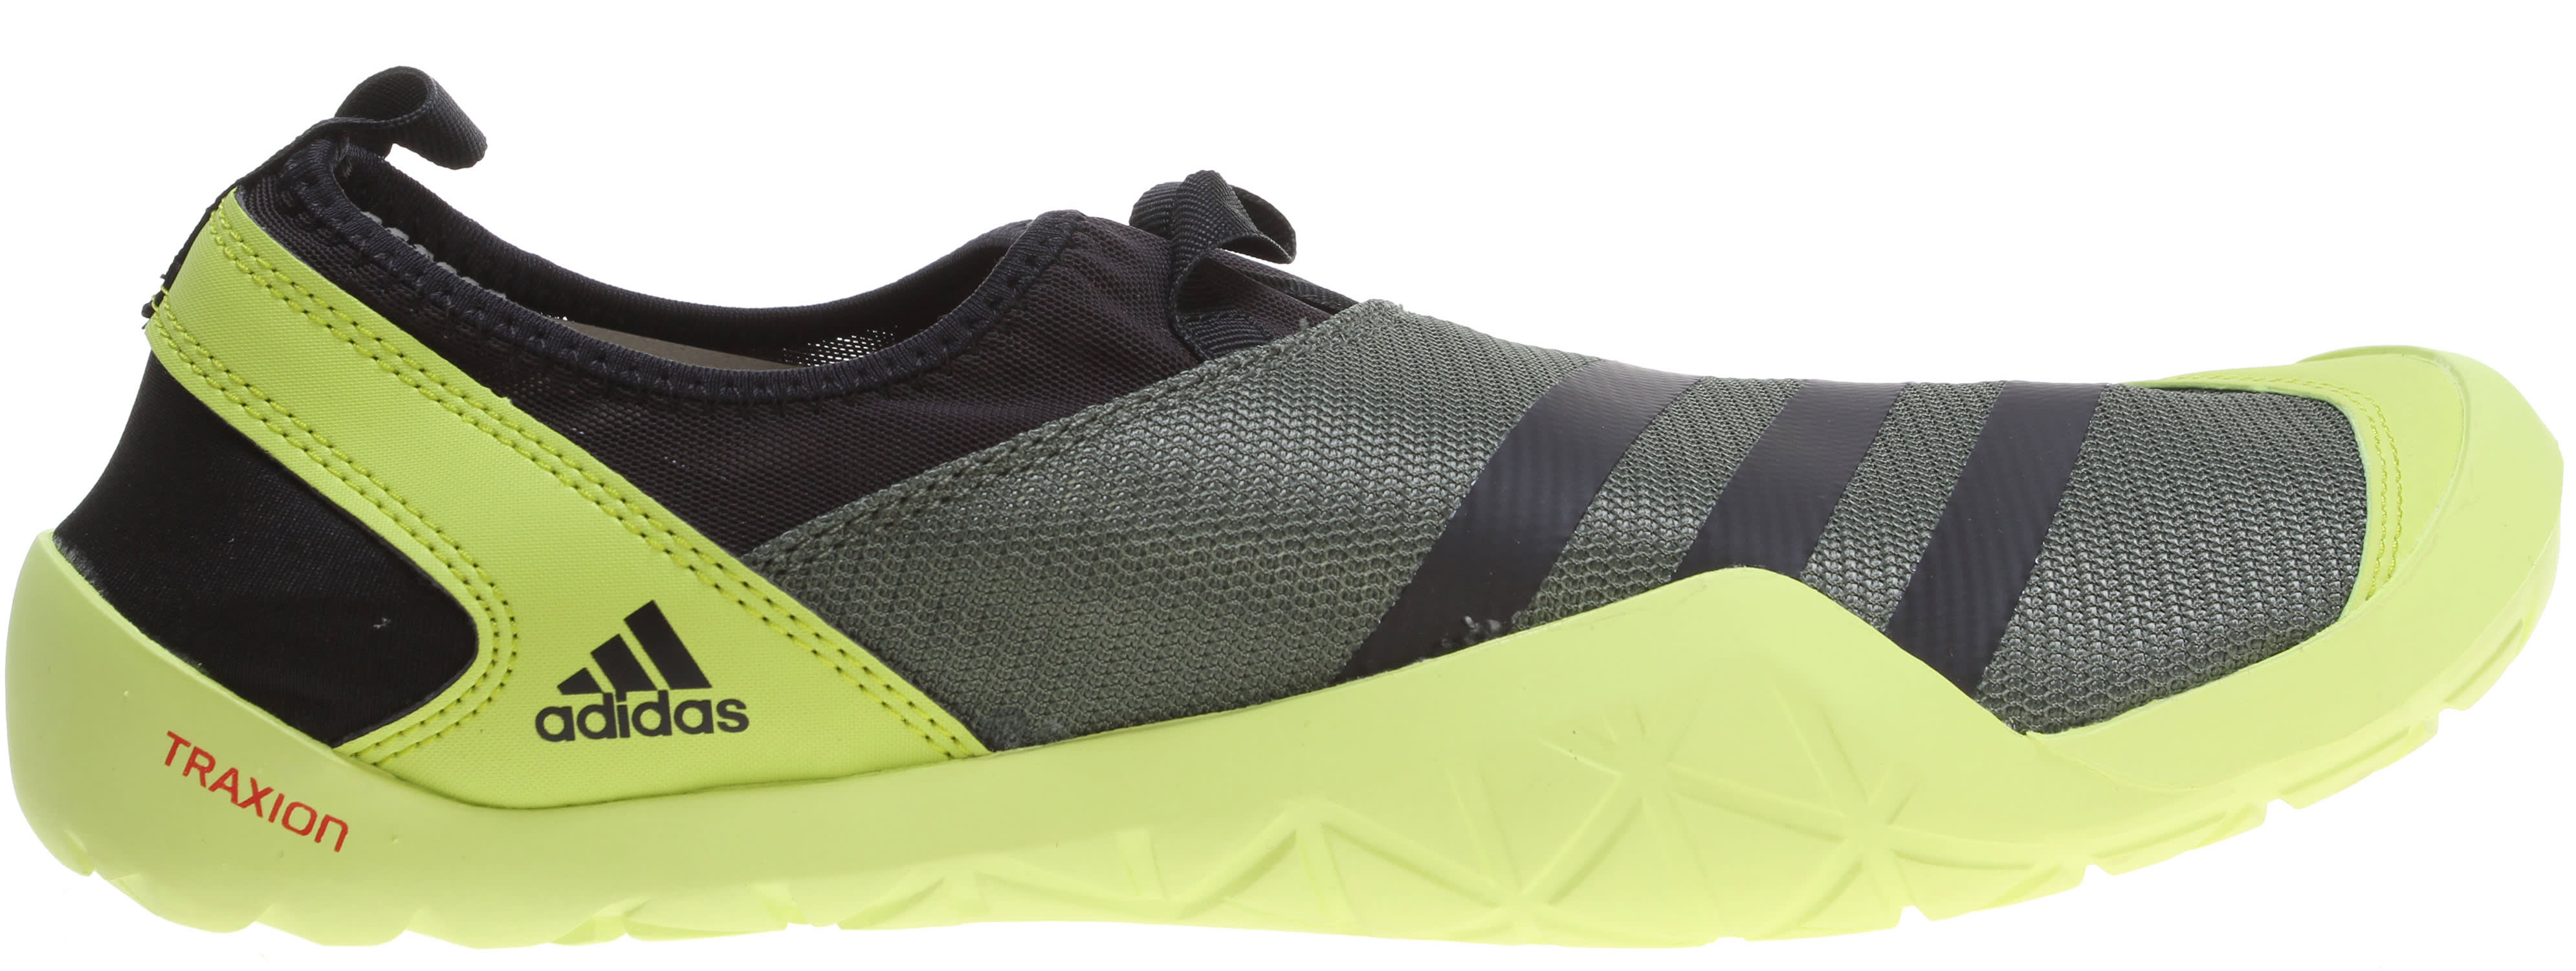 pretty nice a01e2 11312 adidas water shoes adidas climacool ...